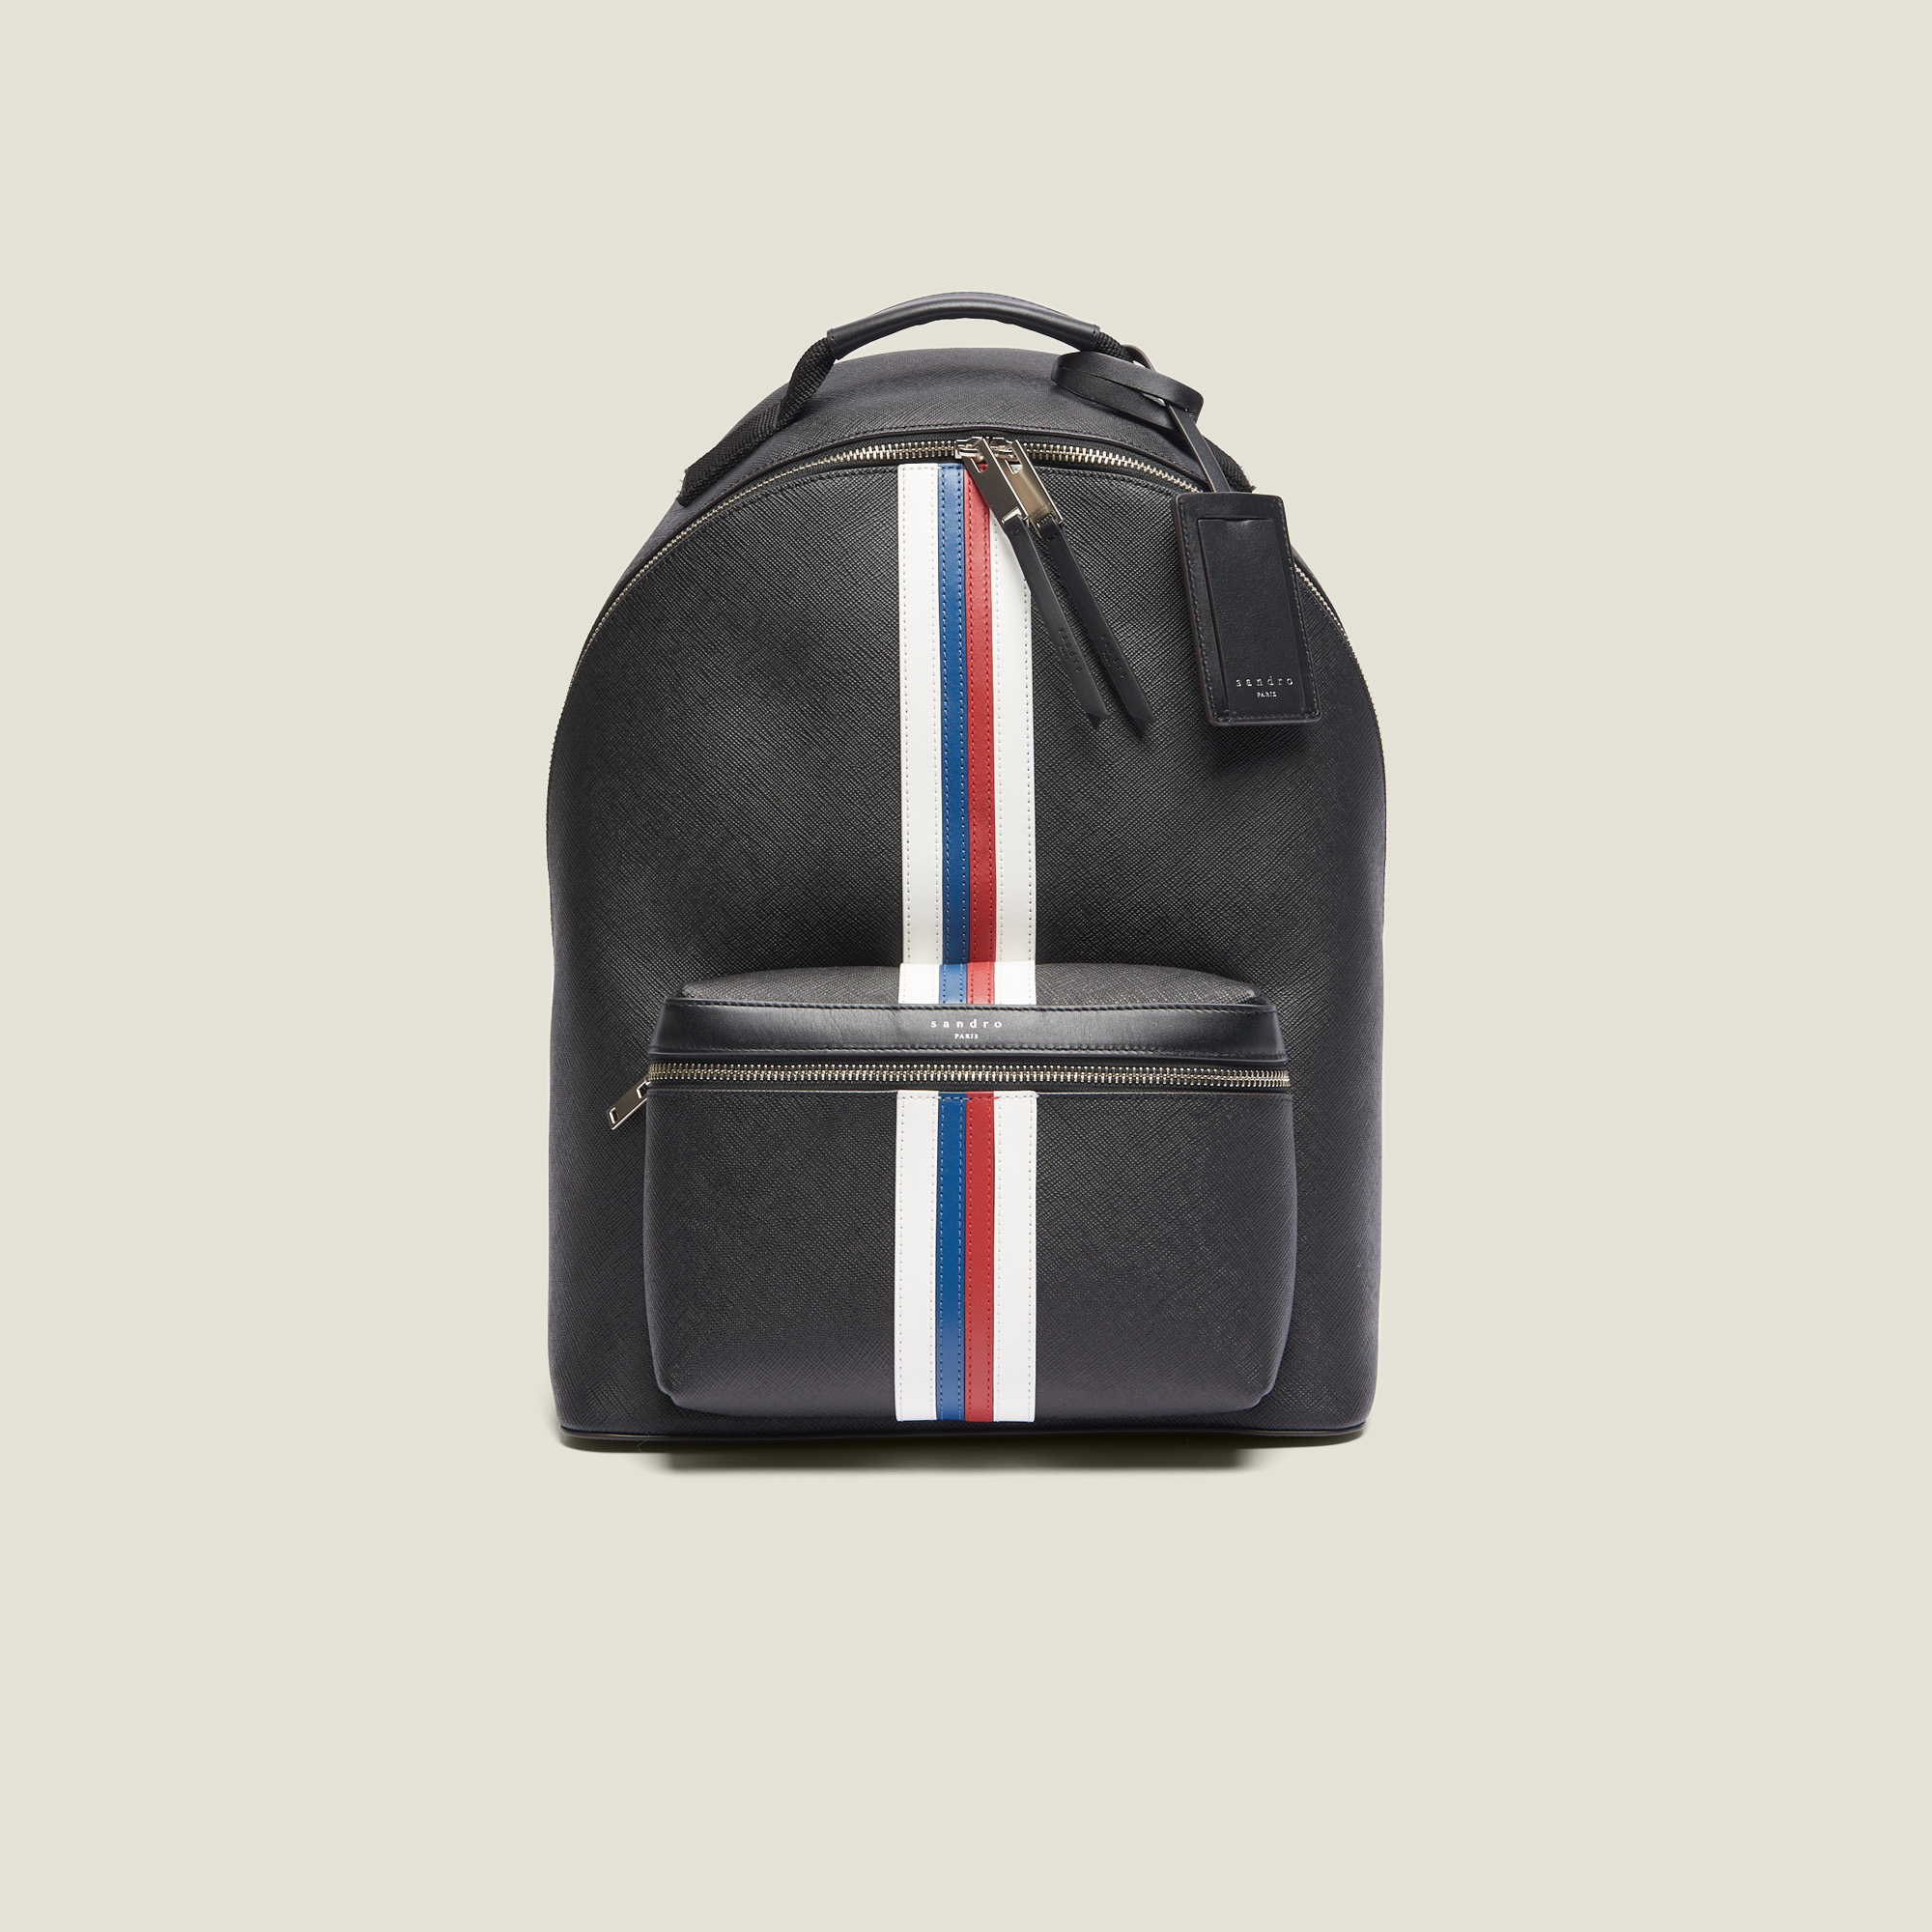 4d339aa1f8 Saffiano Leather Backpack